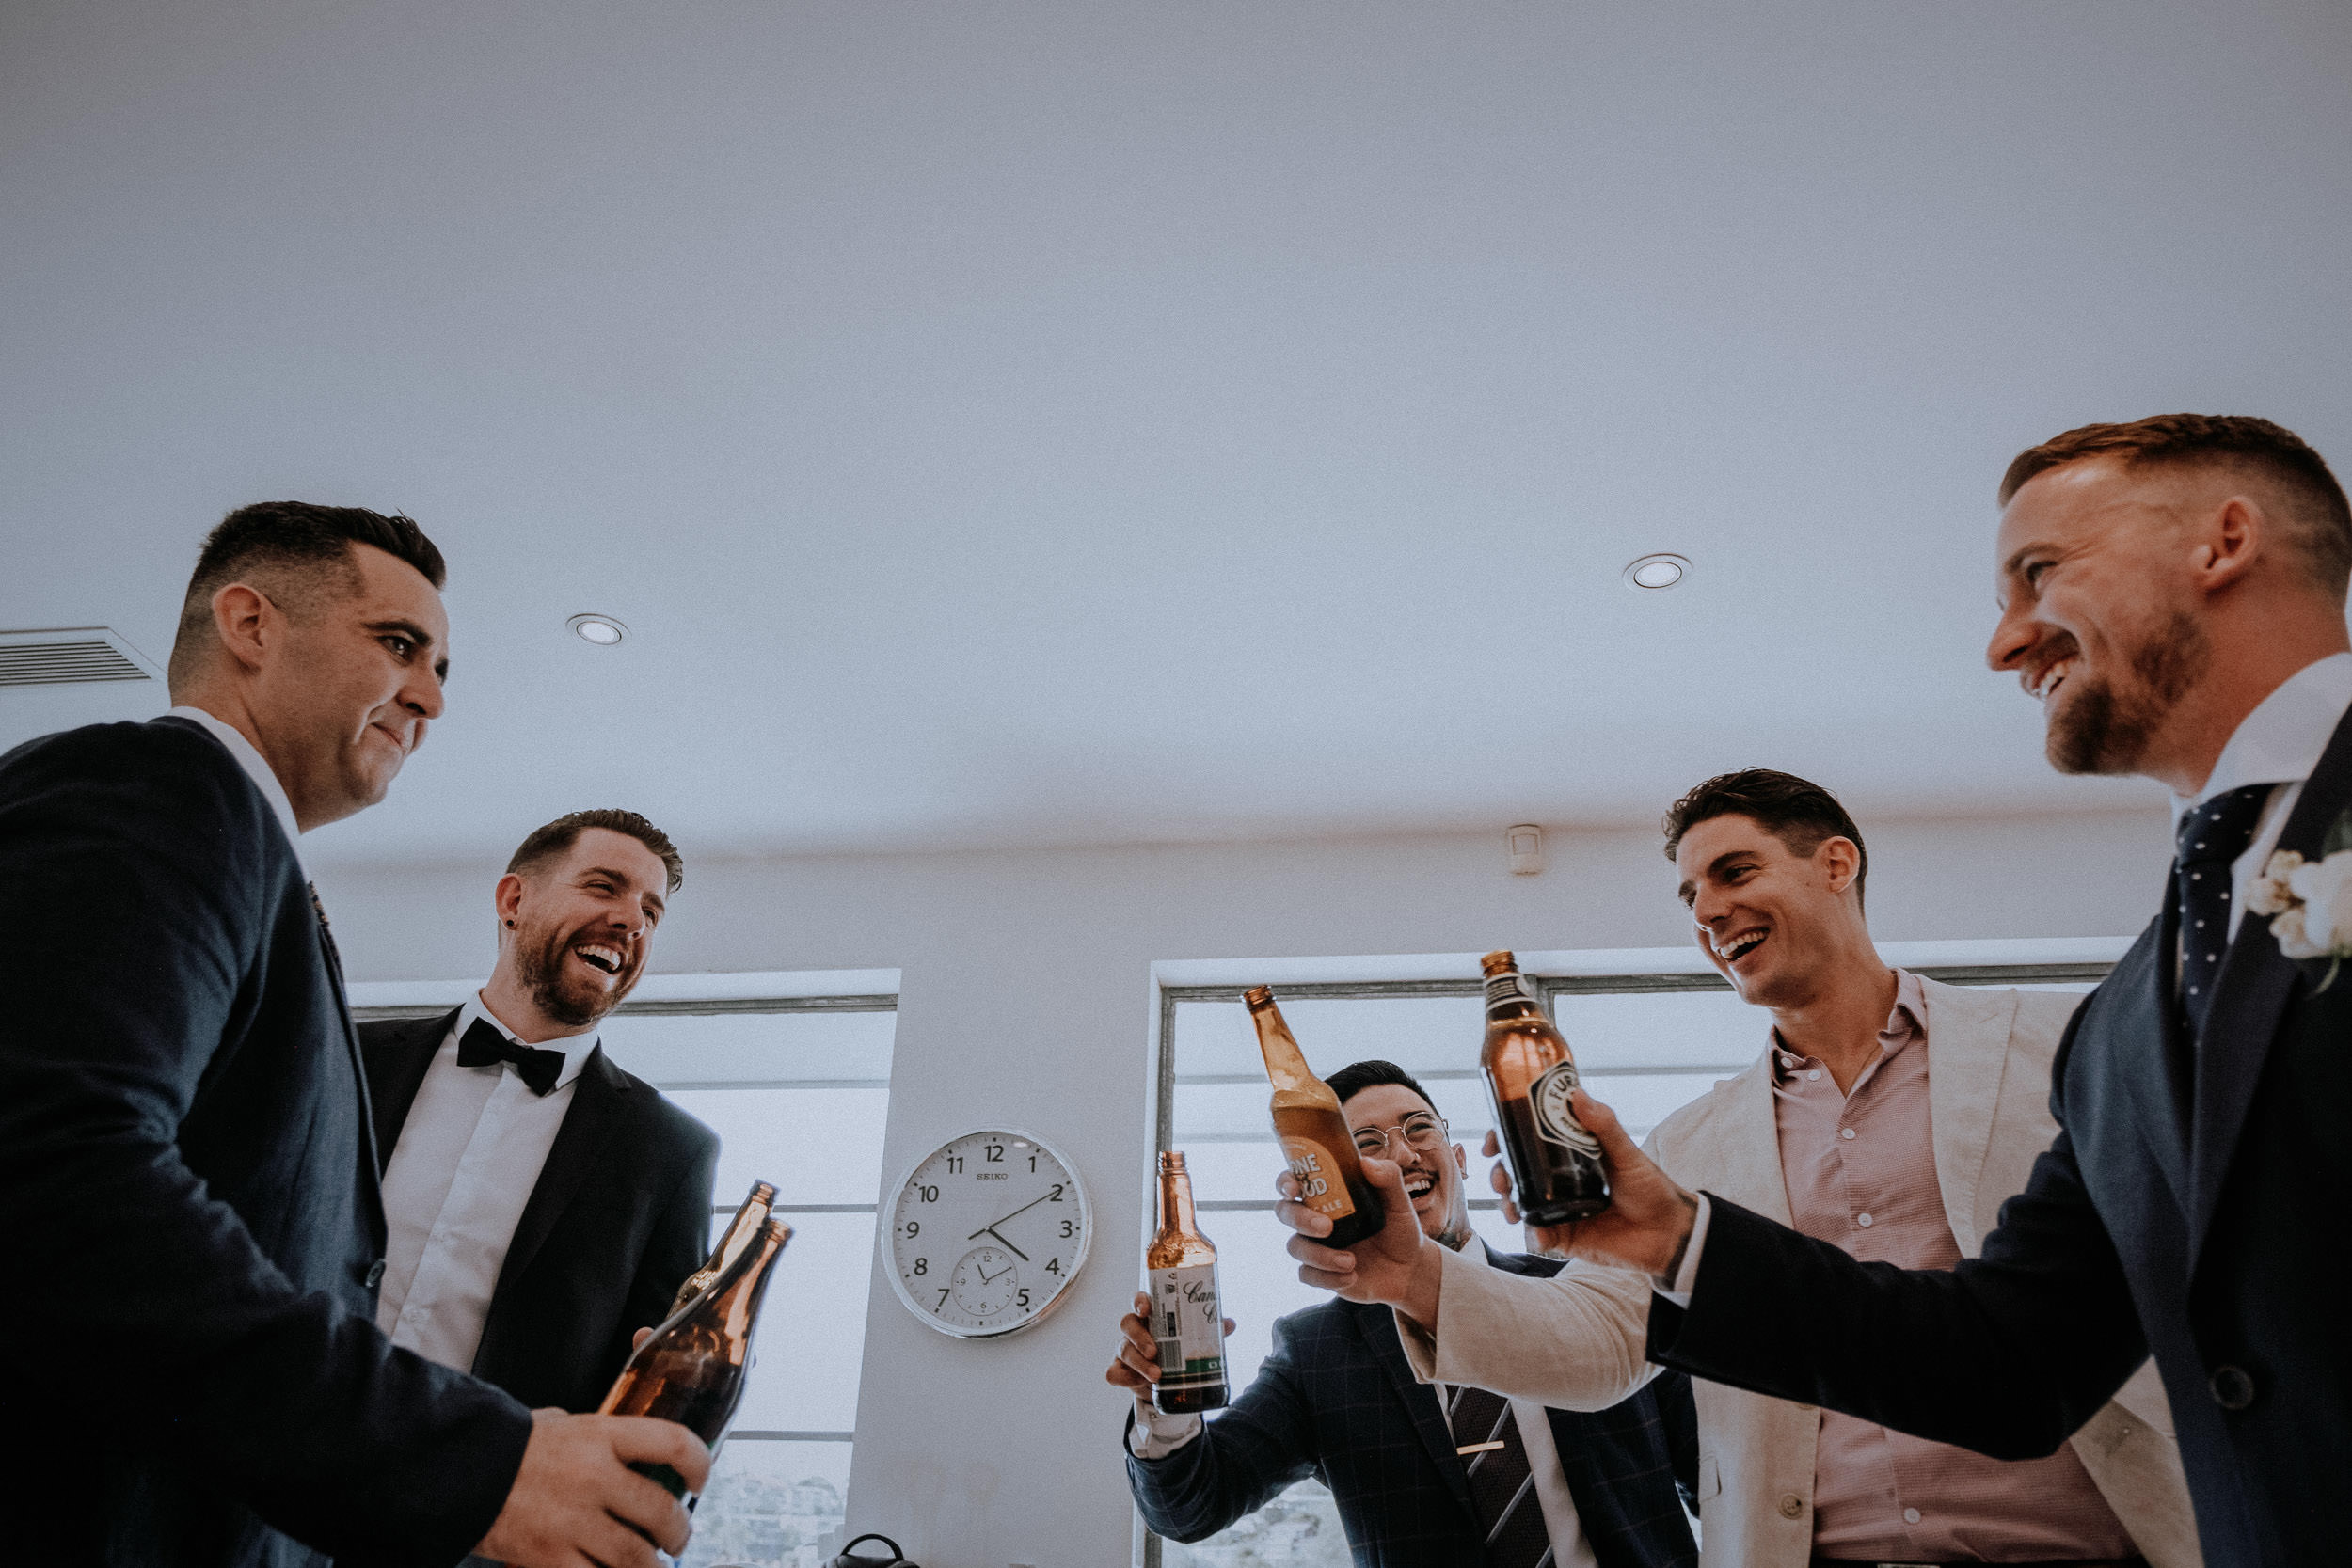 The wedding party celebrate with beers before heading down the aisle